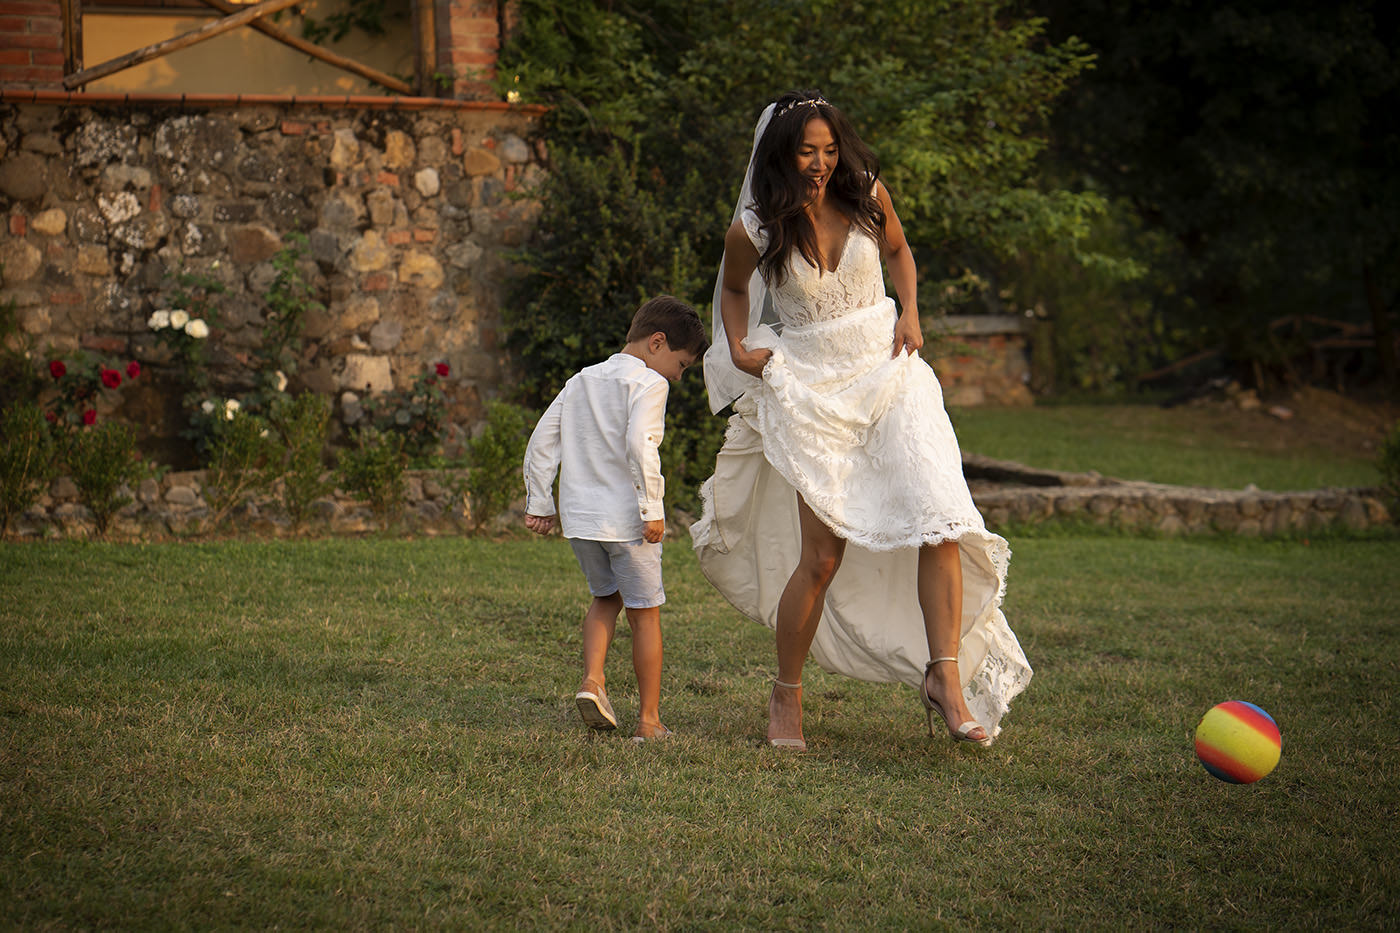 Duccio Argentini: Vows Renewal Photographer in Tuscany